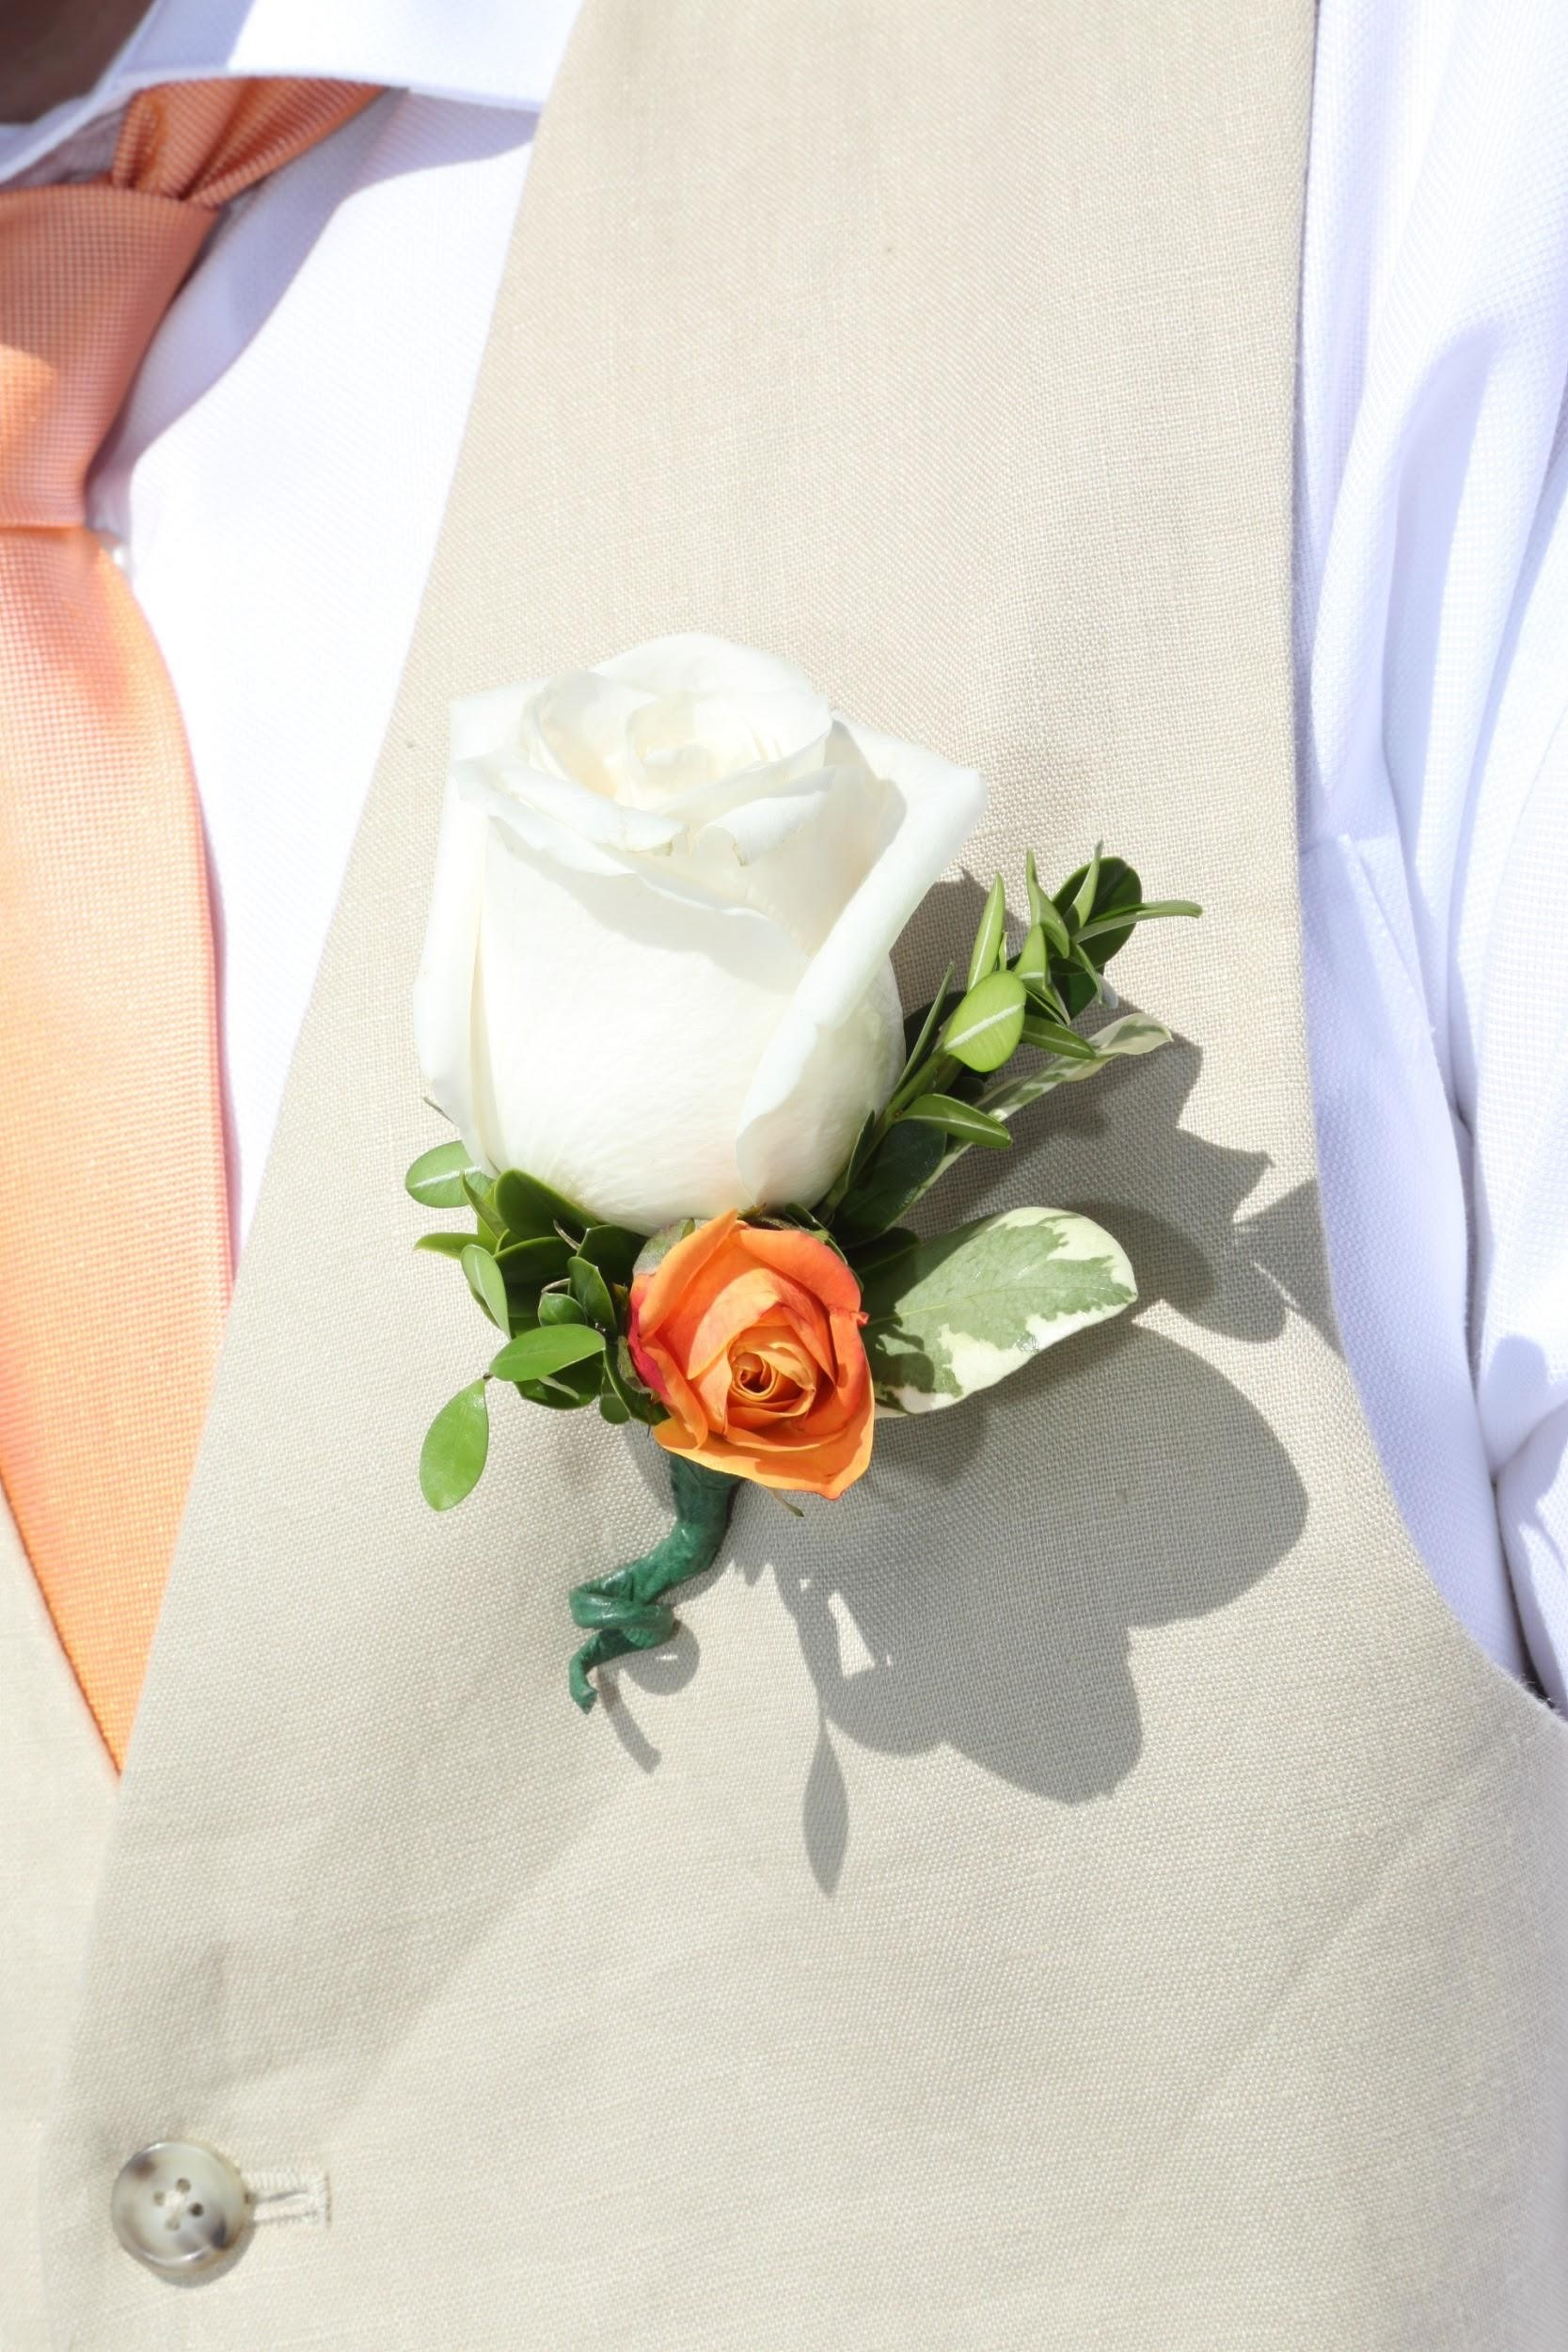 The groom had a touch of peach to match the bridal bouquet